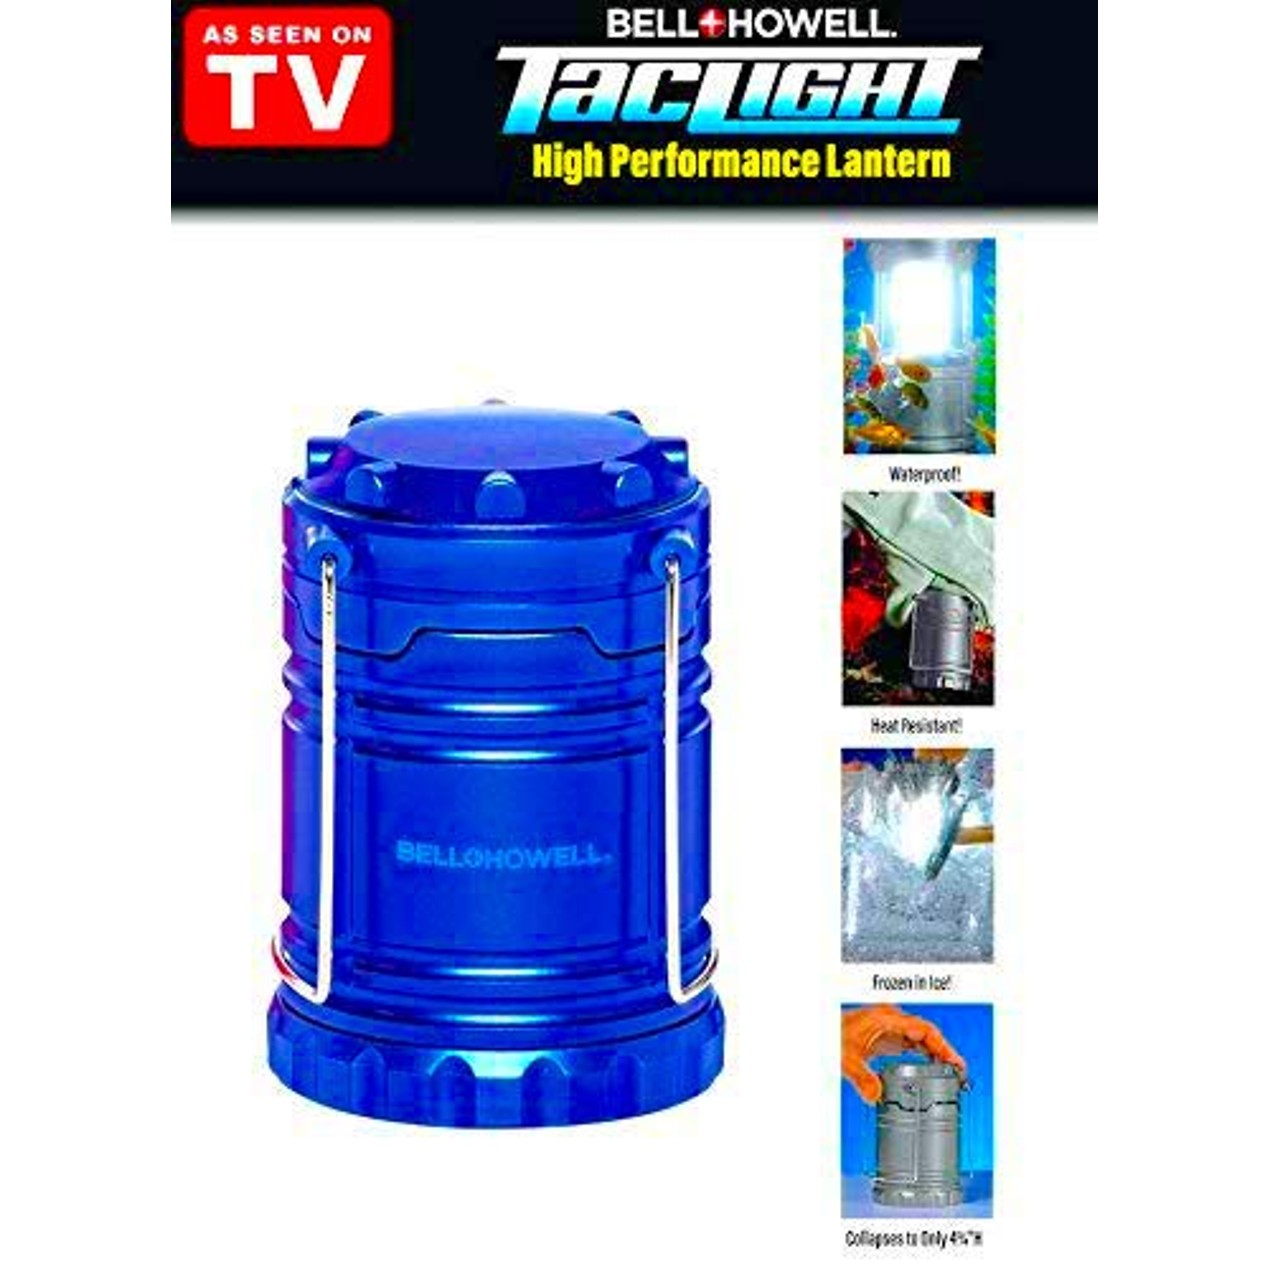 Bell + Howell TacLight Lantern Portable LED, Collapsible